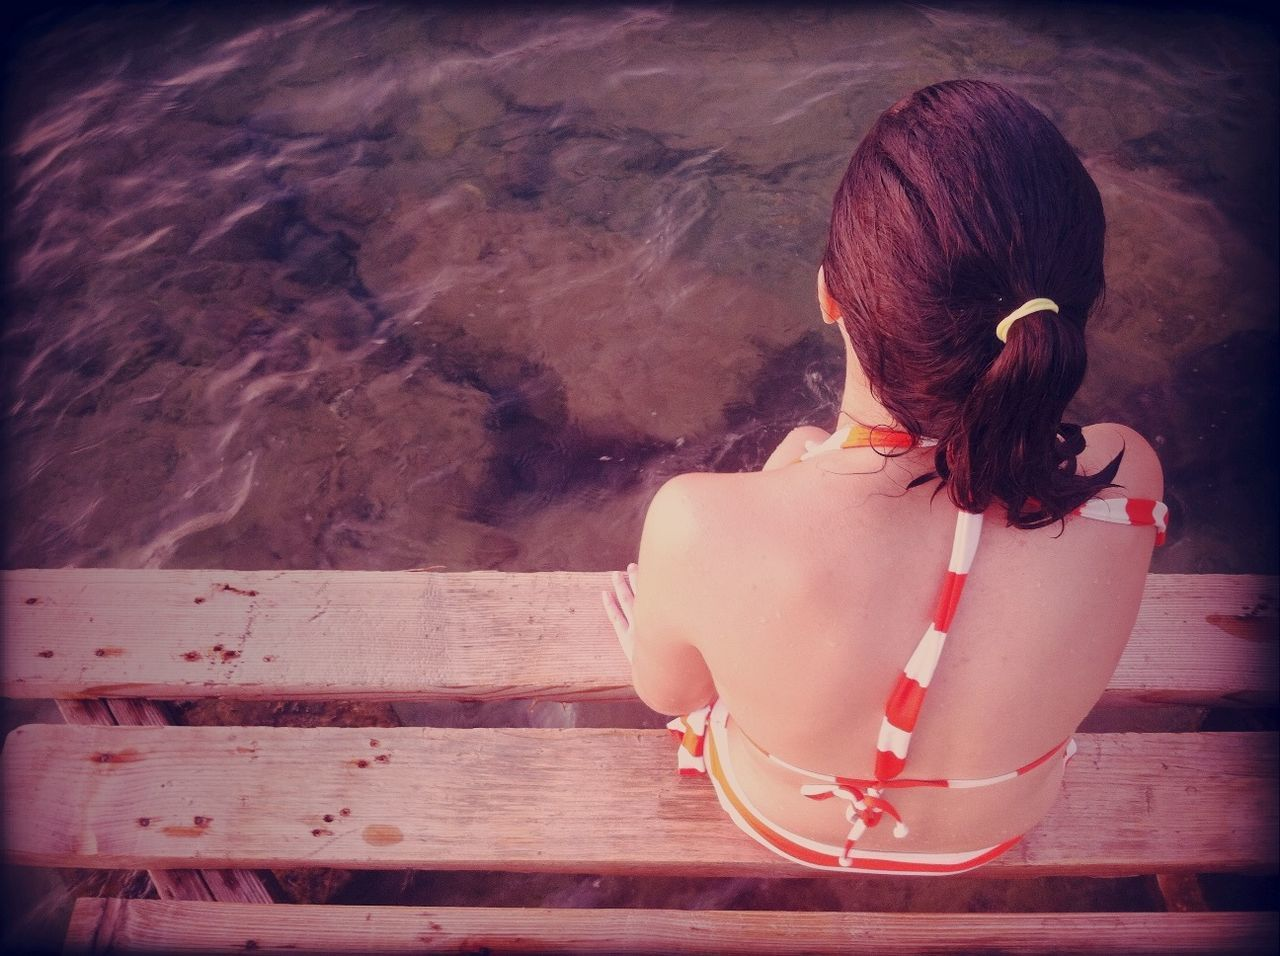 A young woman seen from behind sitting on a dock with her feet in the water